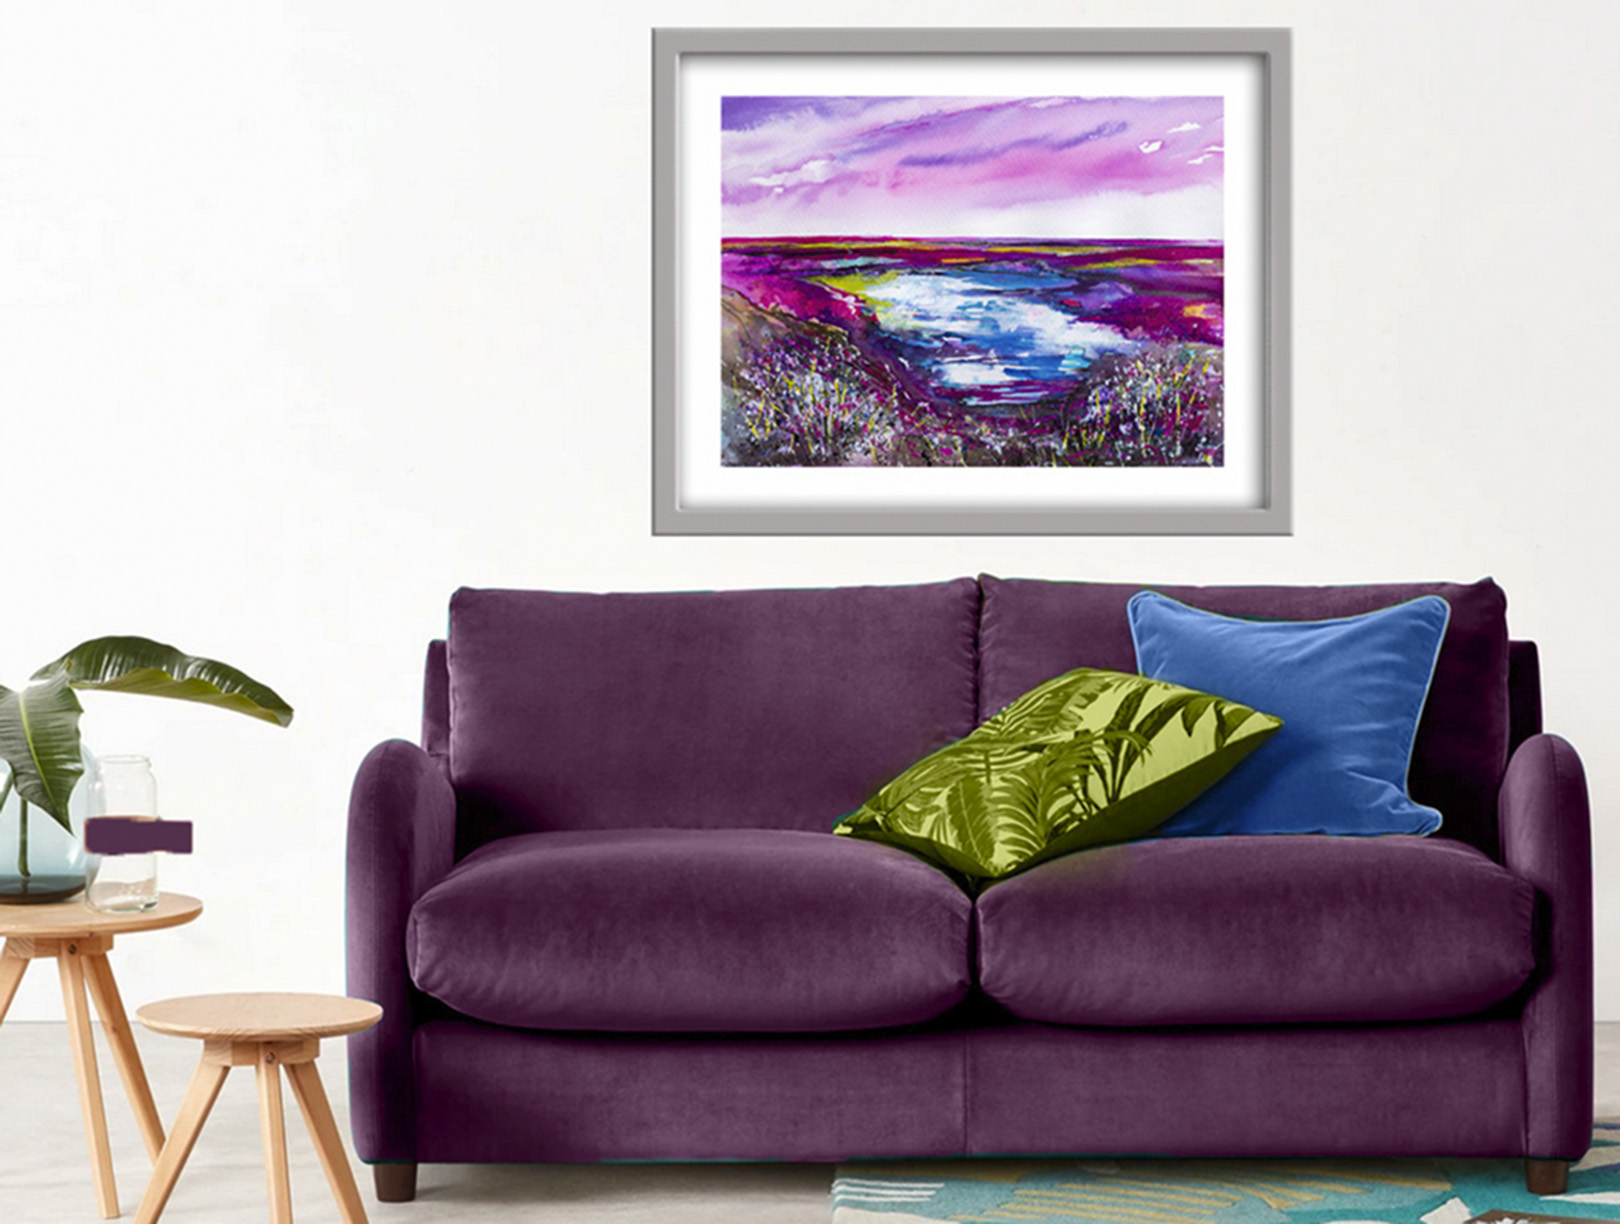 abstract, abstract art, abstract painting, abstract landscape, pink, nature, wildlife, countryside, impressionist, impressionist art,